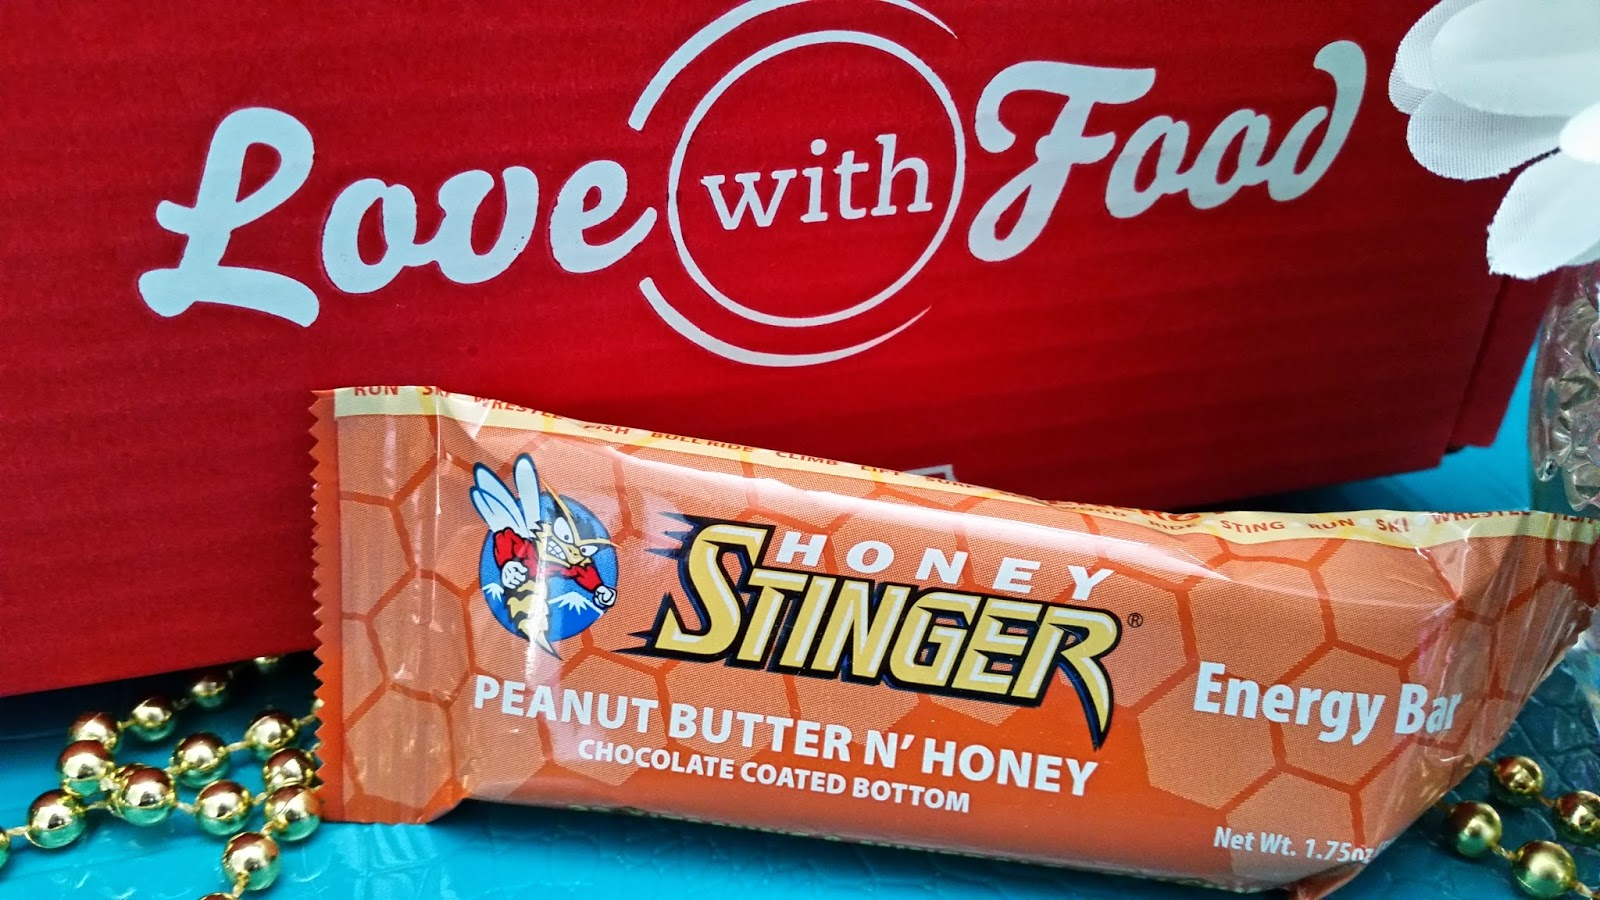 Honey Stinger Peanut Butter N' Honey Energy Bar